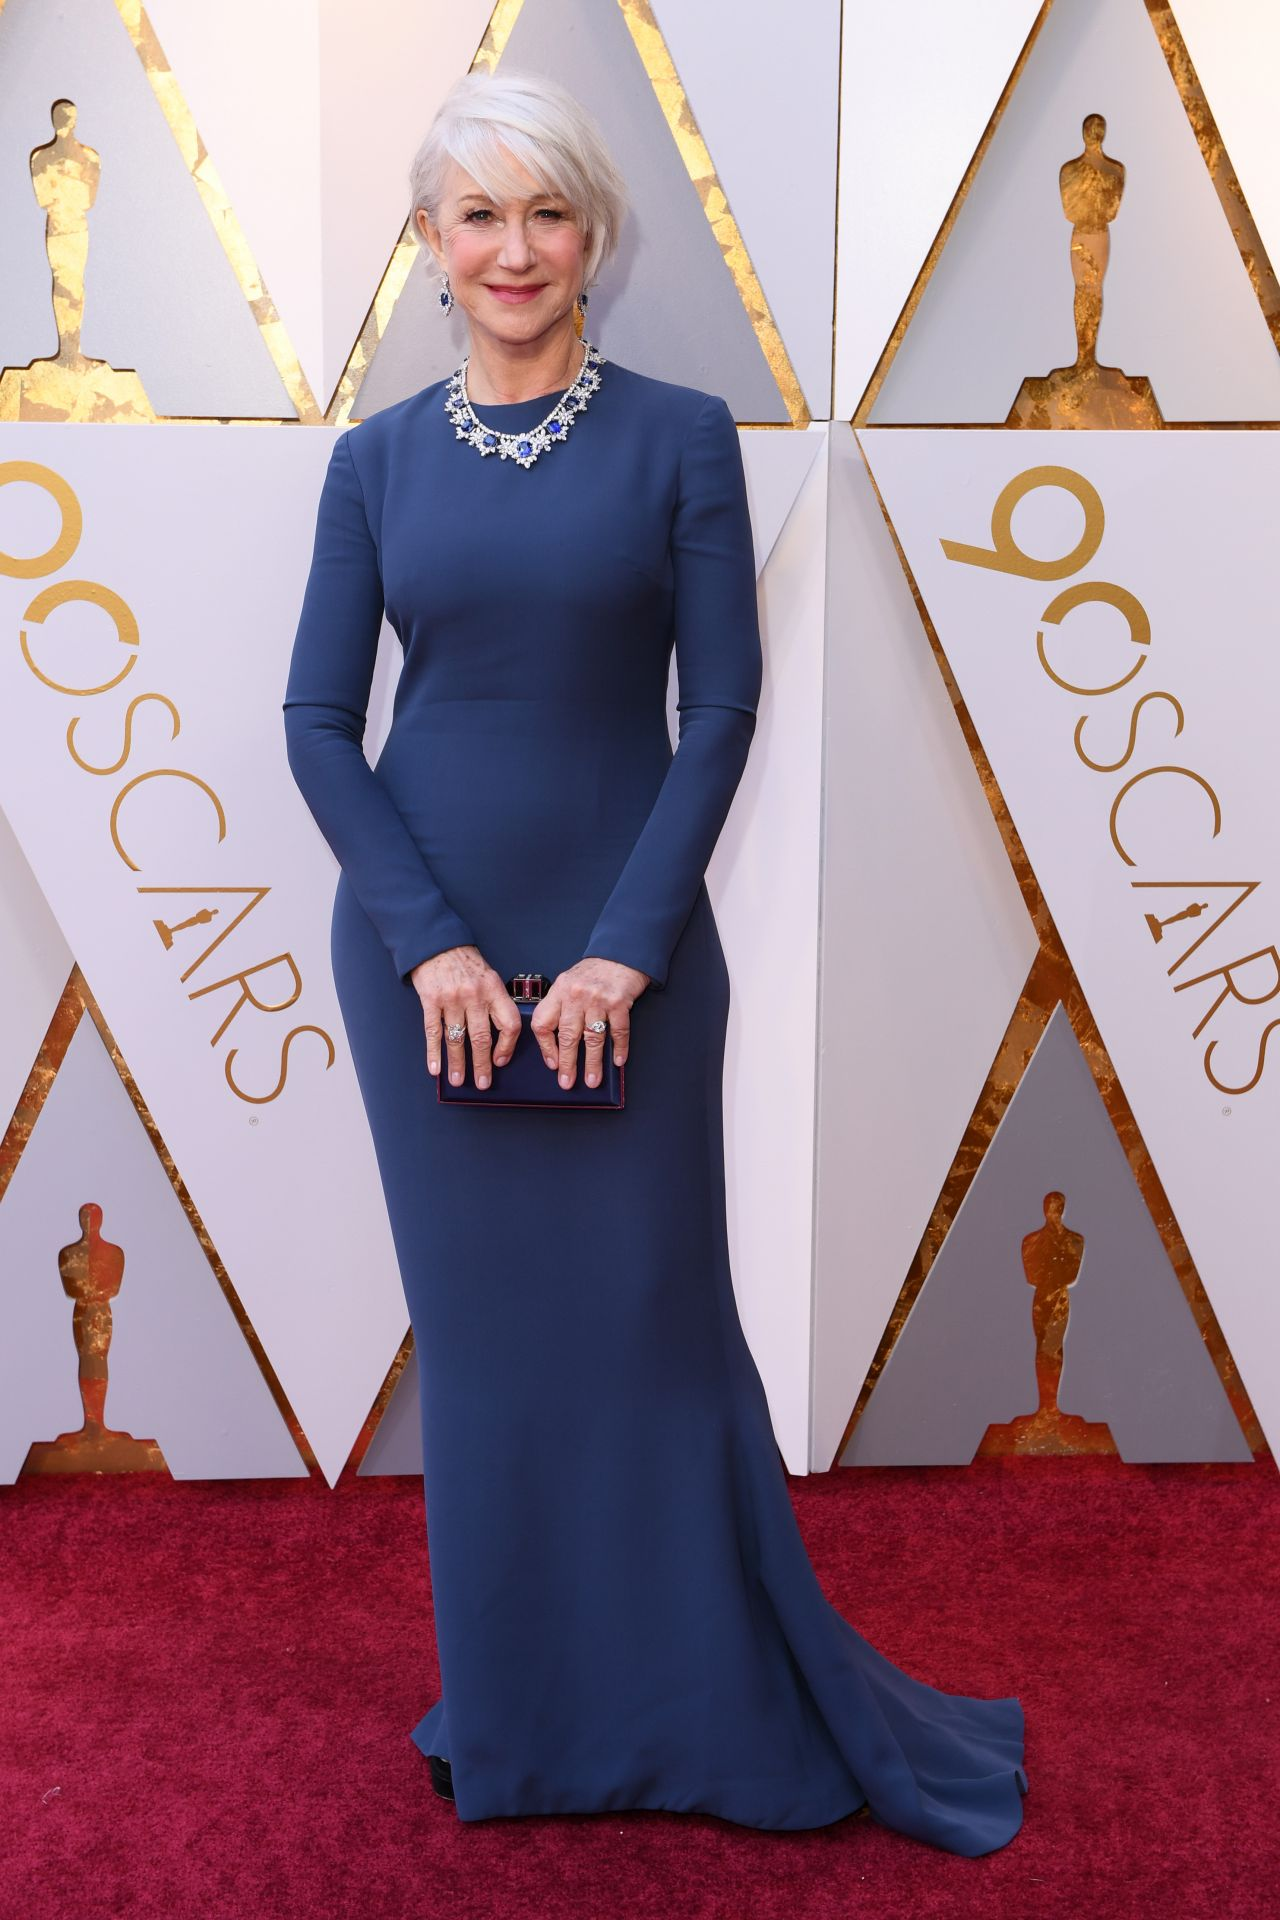 http://celebmafia.com/wp-content/uploads/2018/03/helen-mirrene-oscars-2018-red-carpet-5.jpg